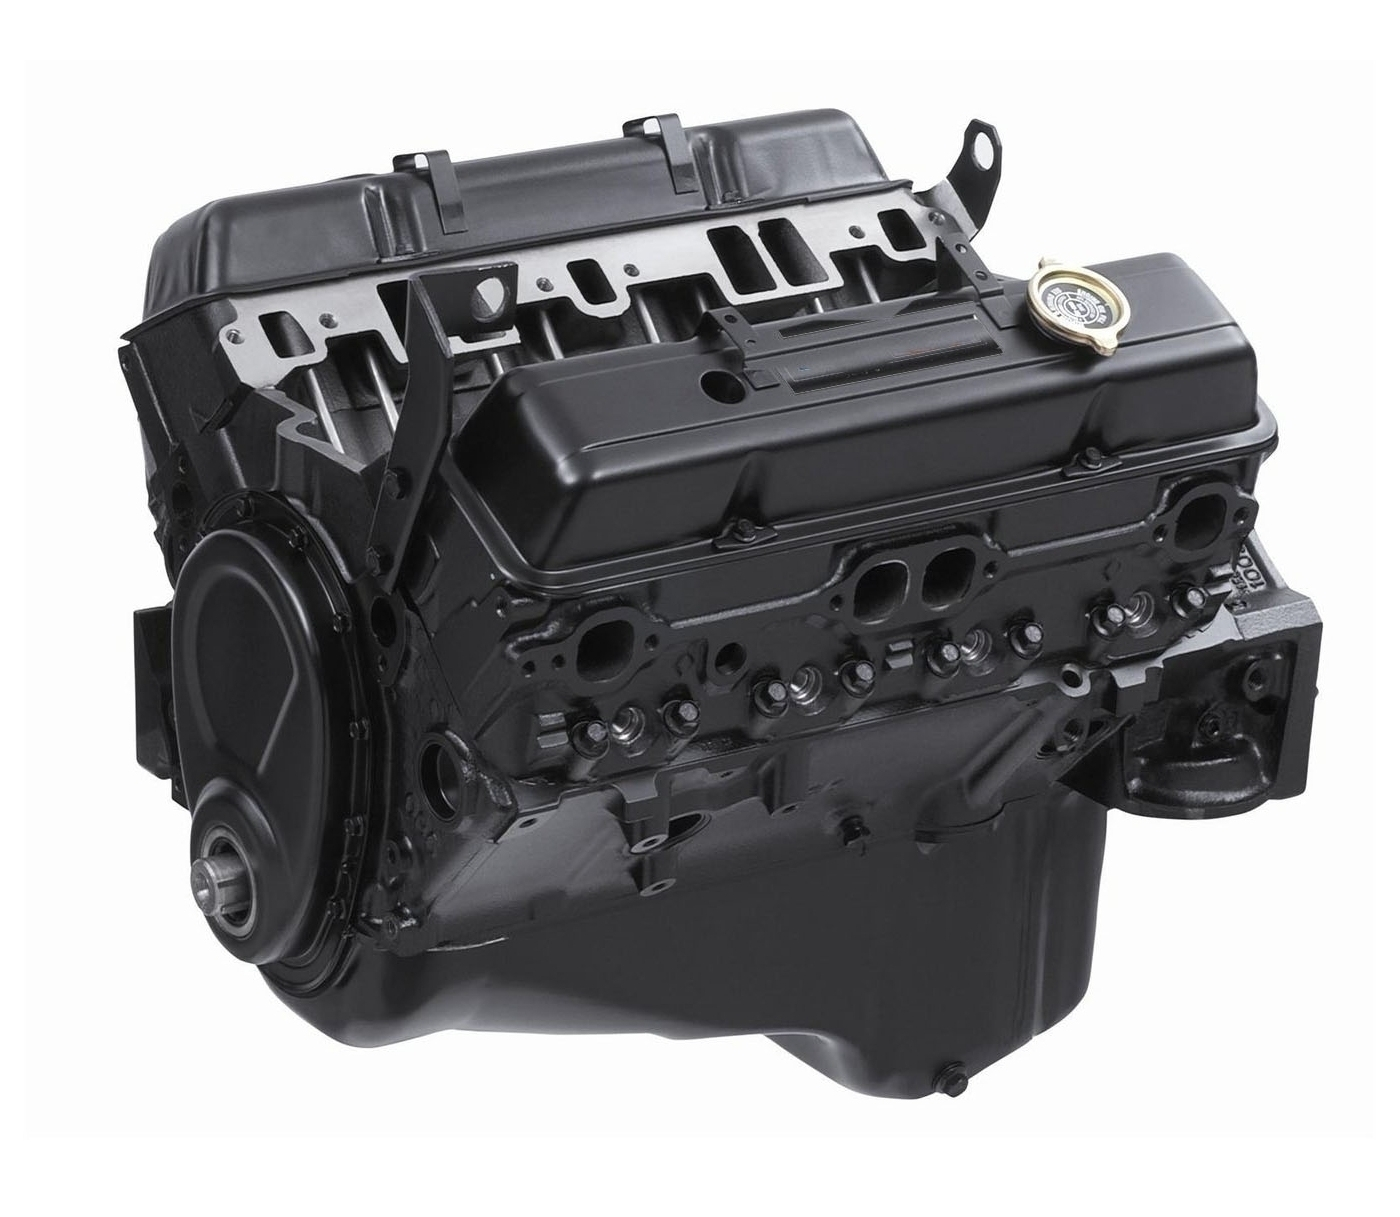 5.7L Reman Long Block Engine For Workhorse P32